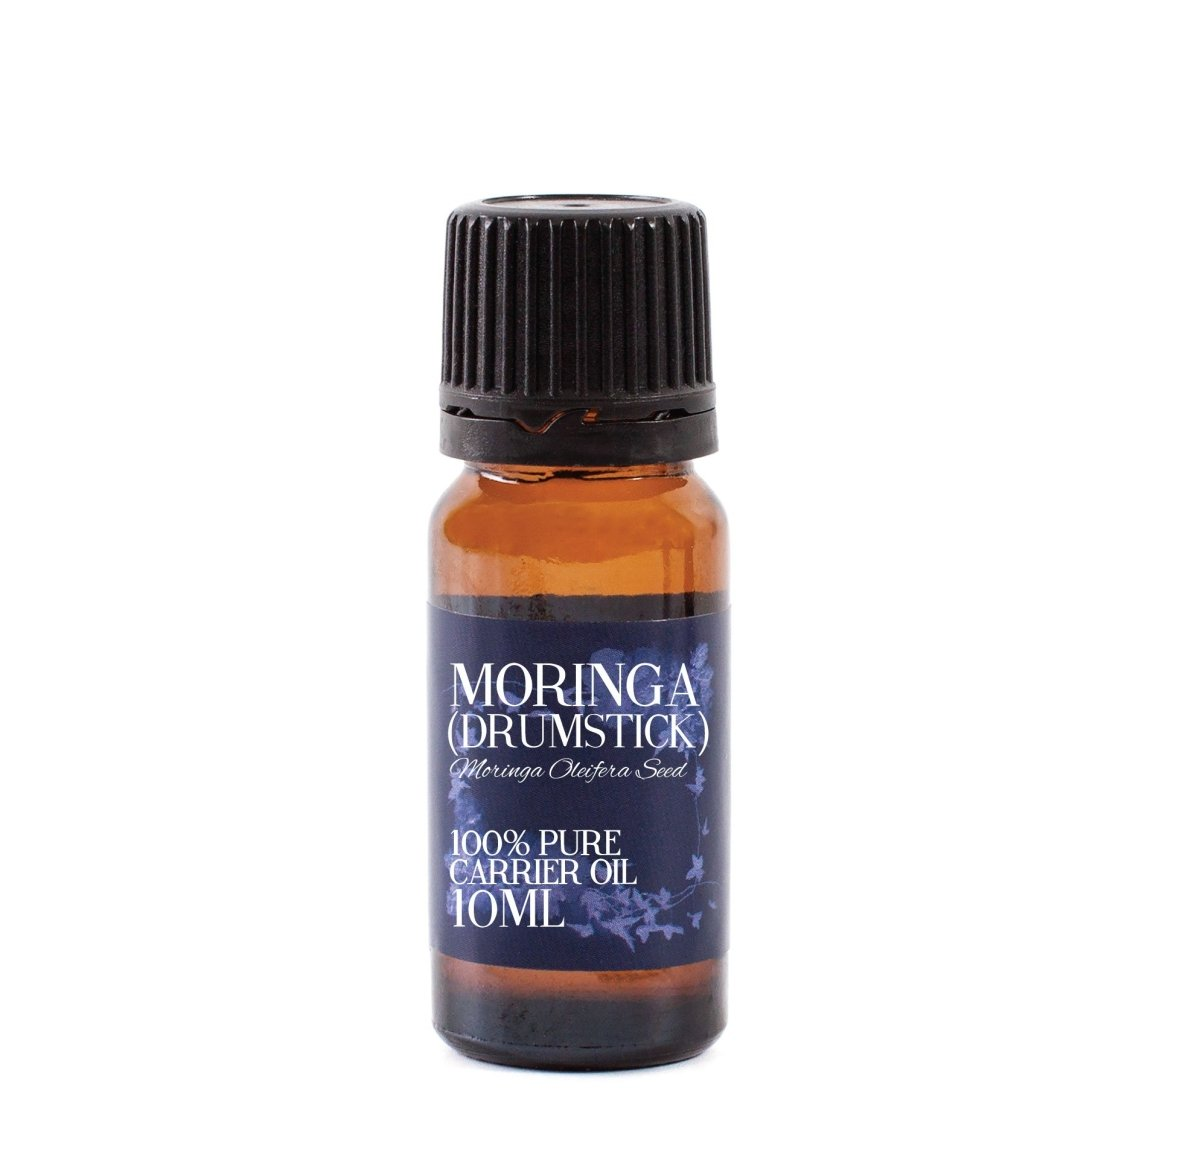 Moringa (Drumstick) Carrier Oil - Mystic Moments UK